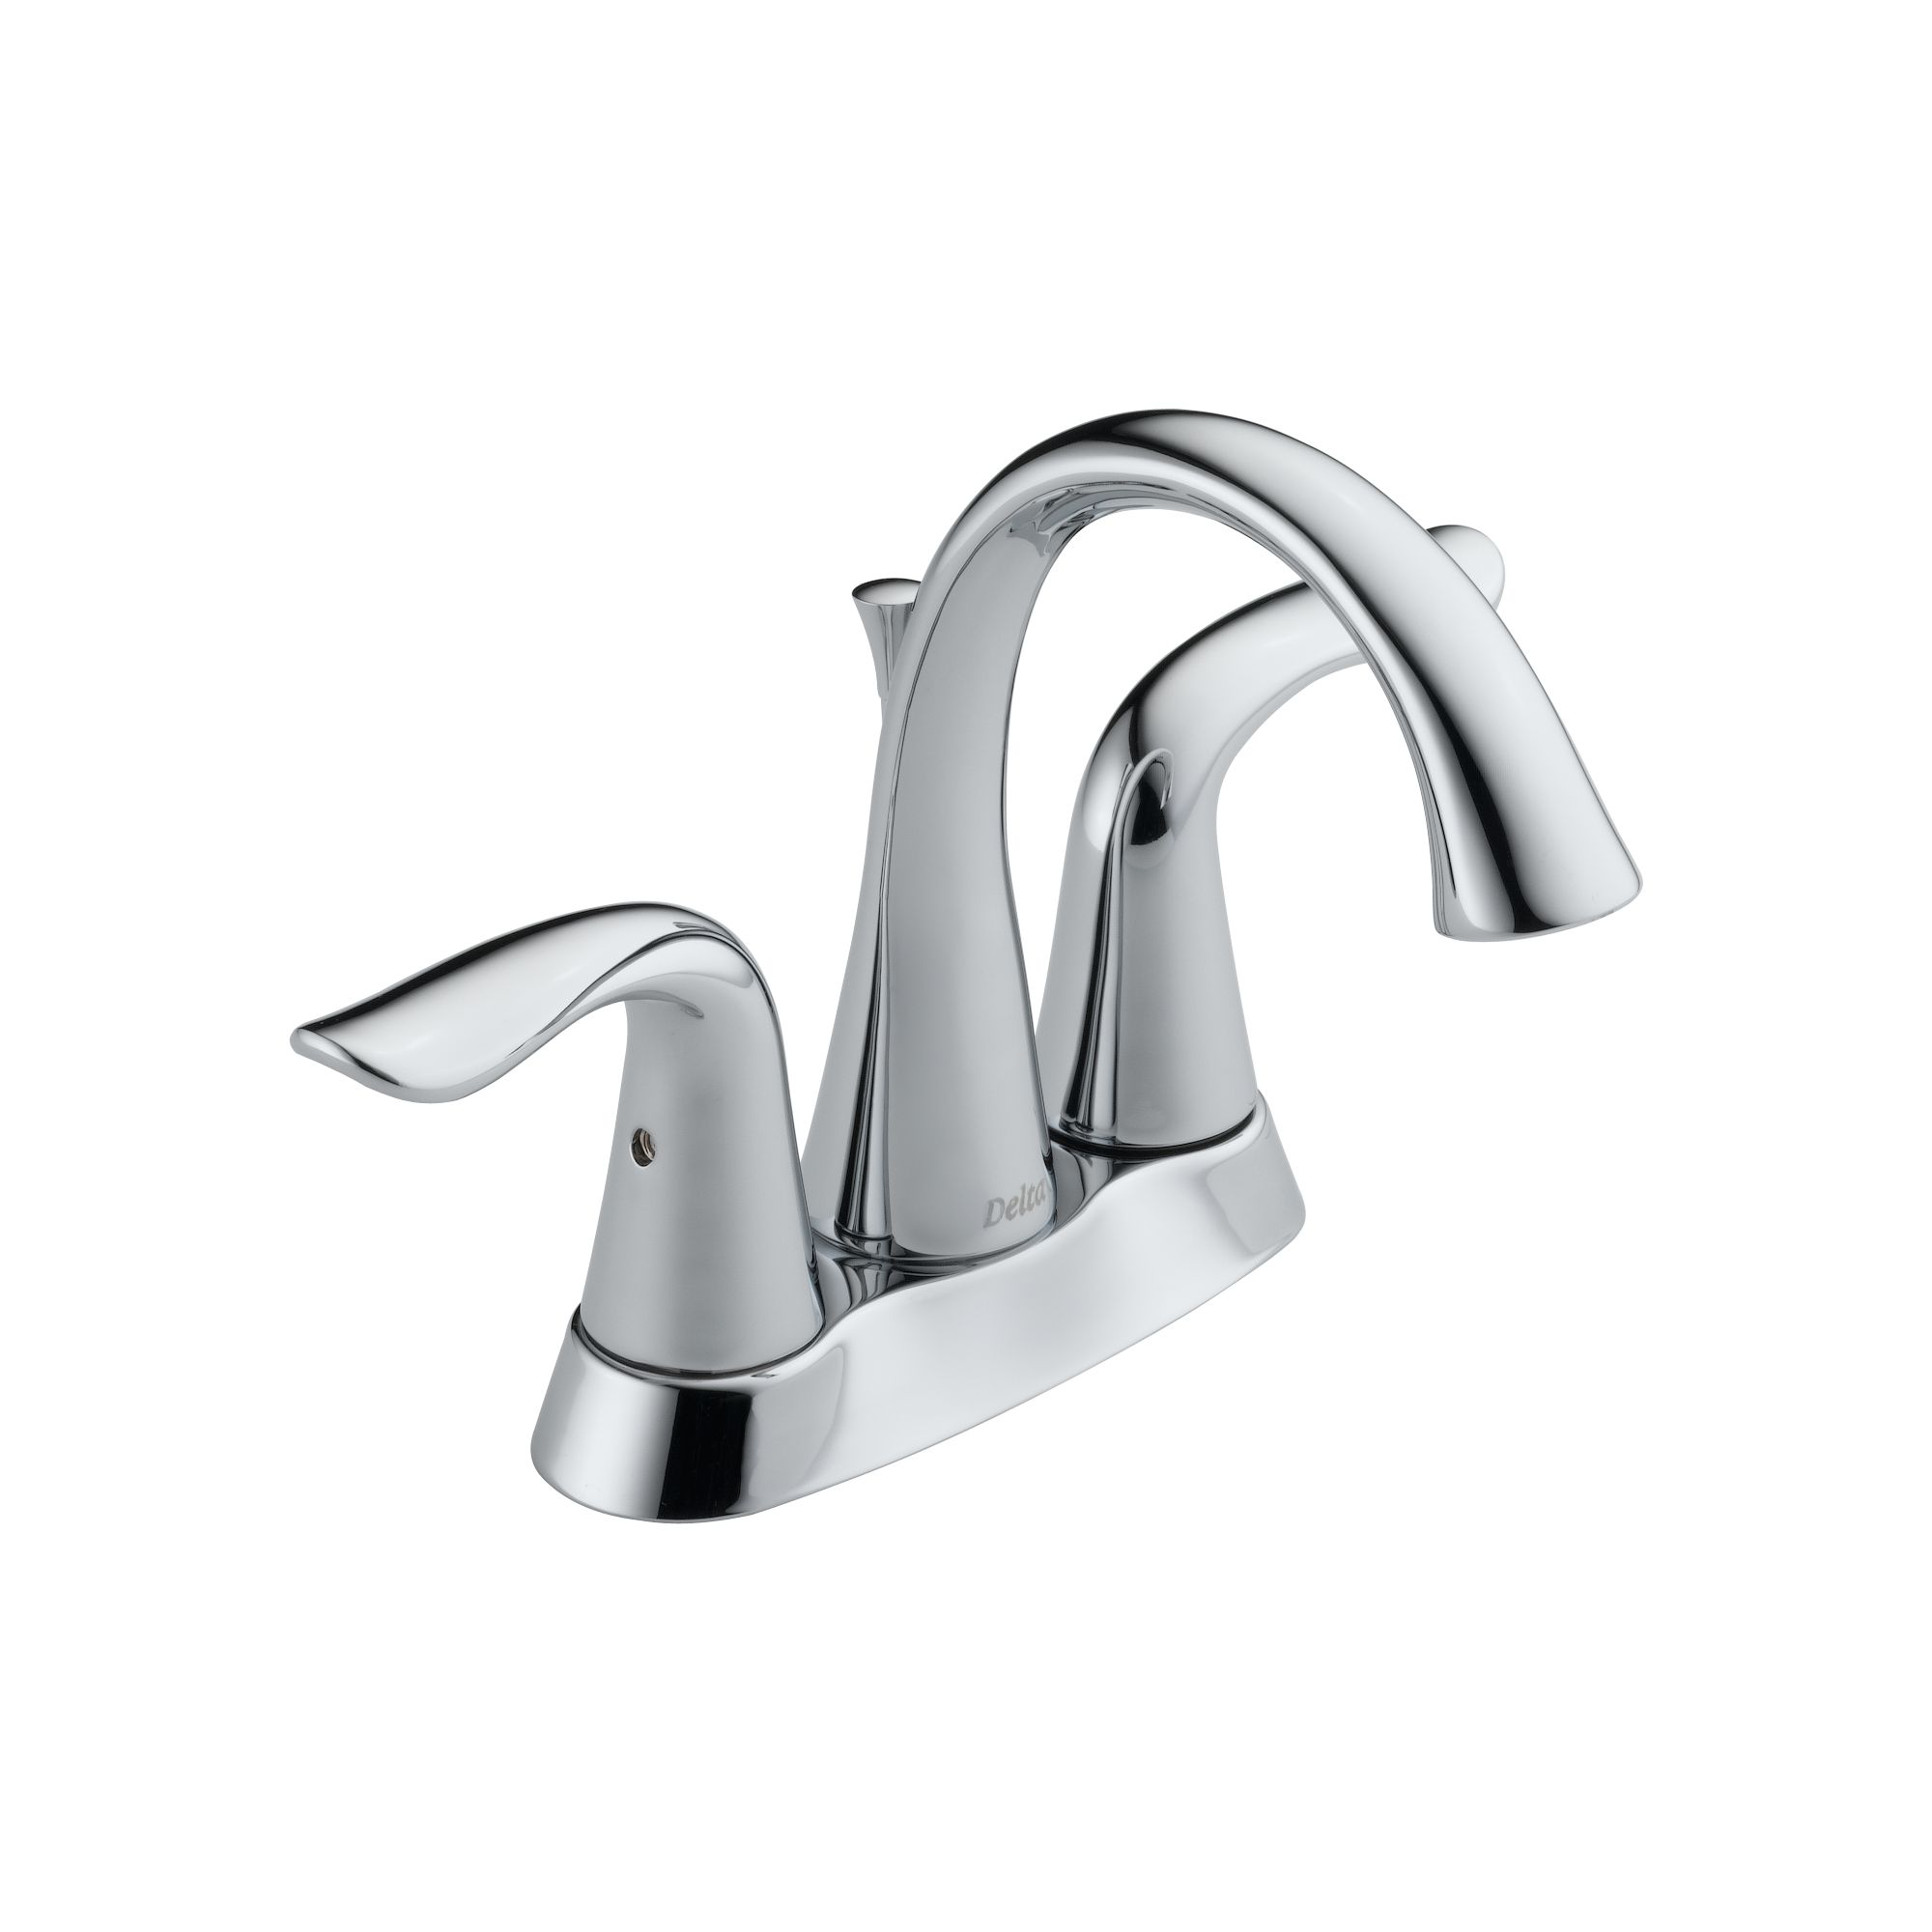 new trends kitchen decor bathroom images moen faucets replacement kohler sink faucet delta of parts bathtub grohe best